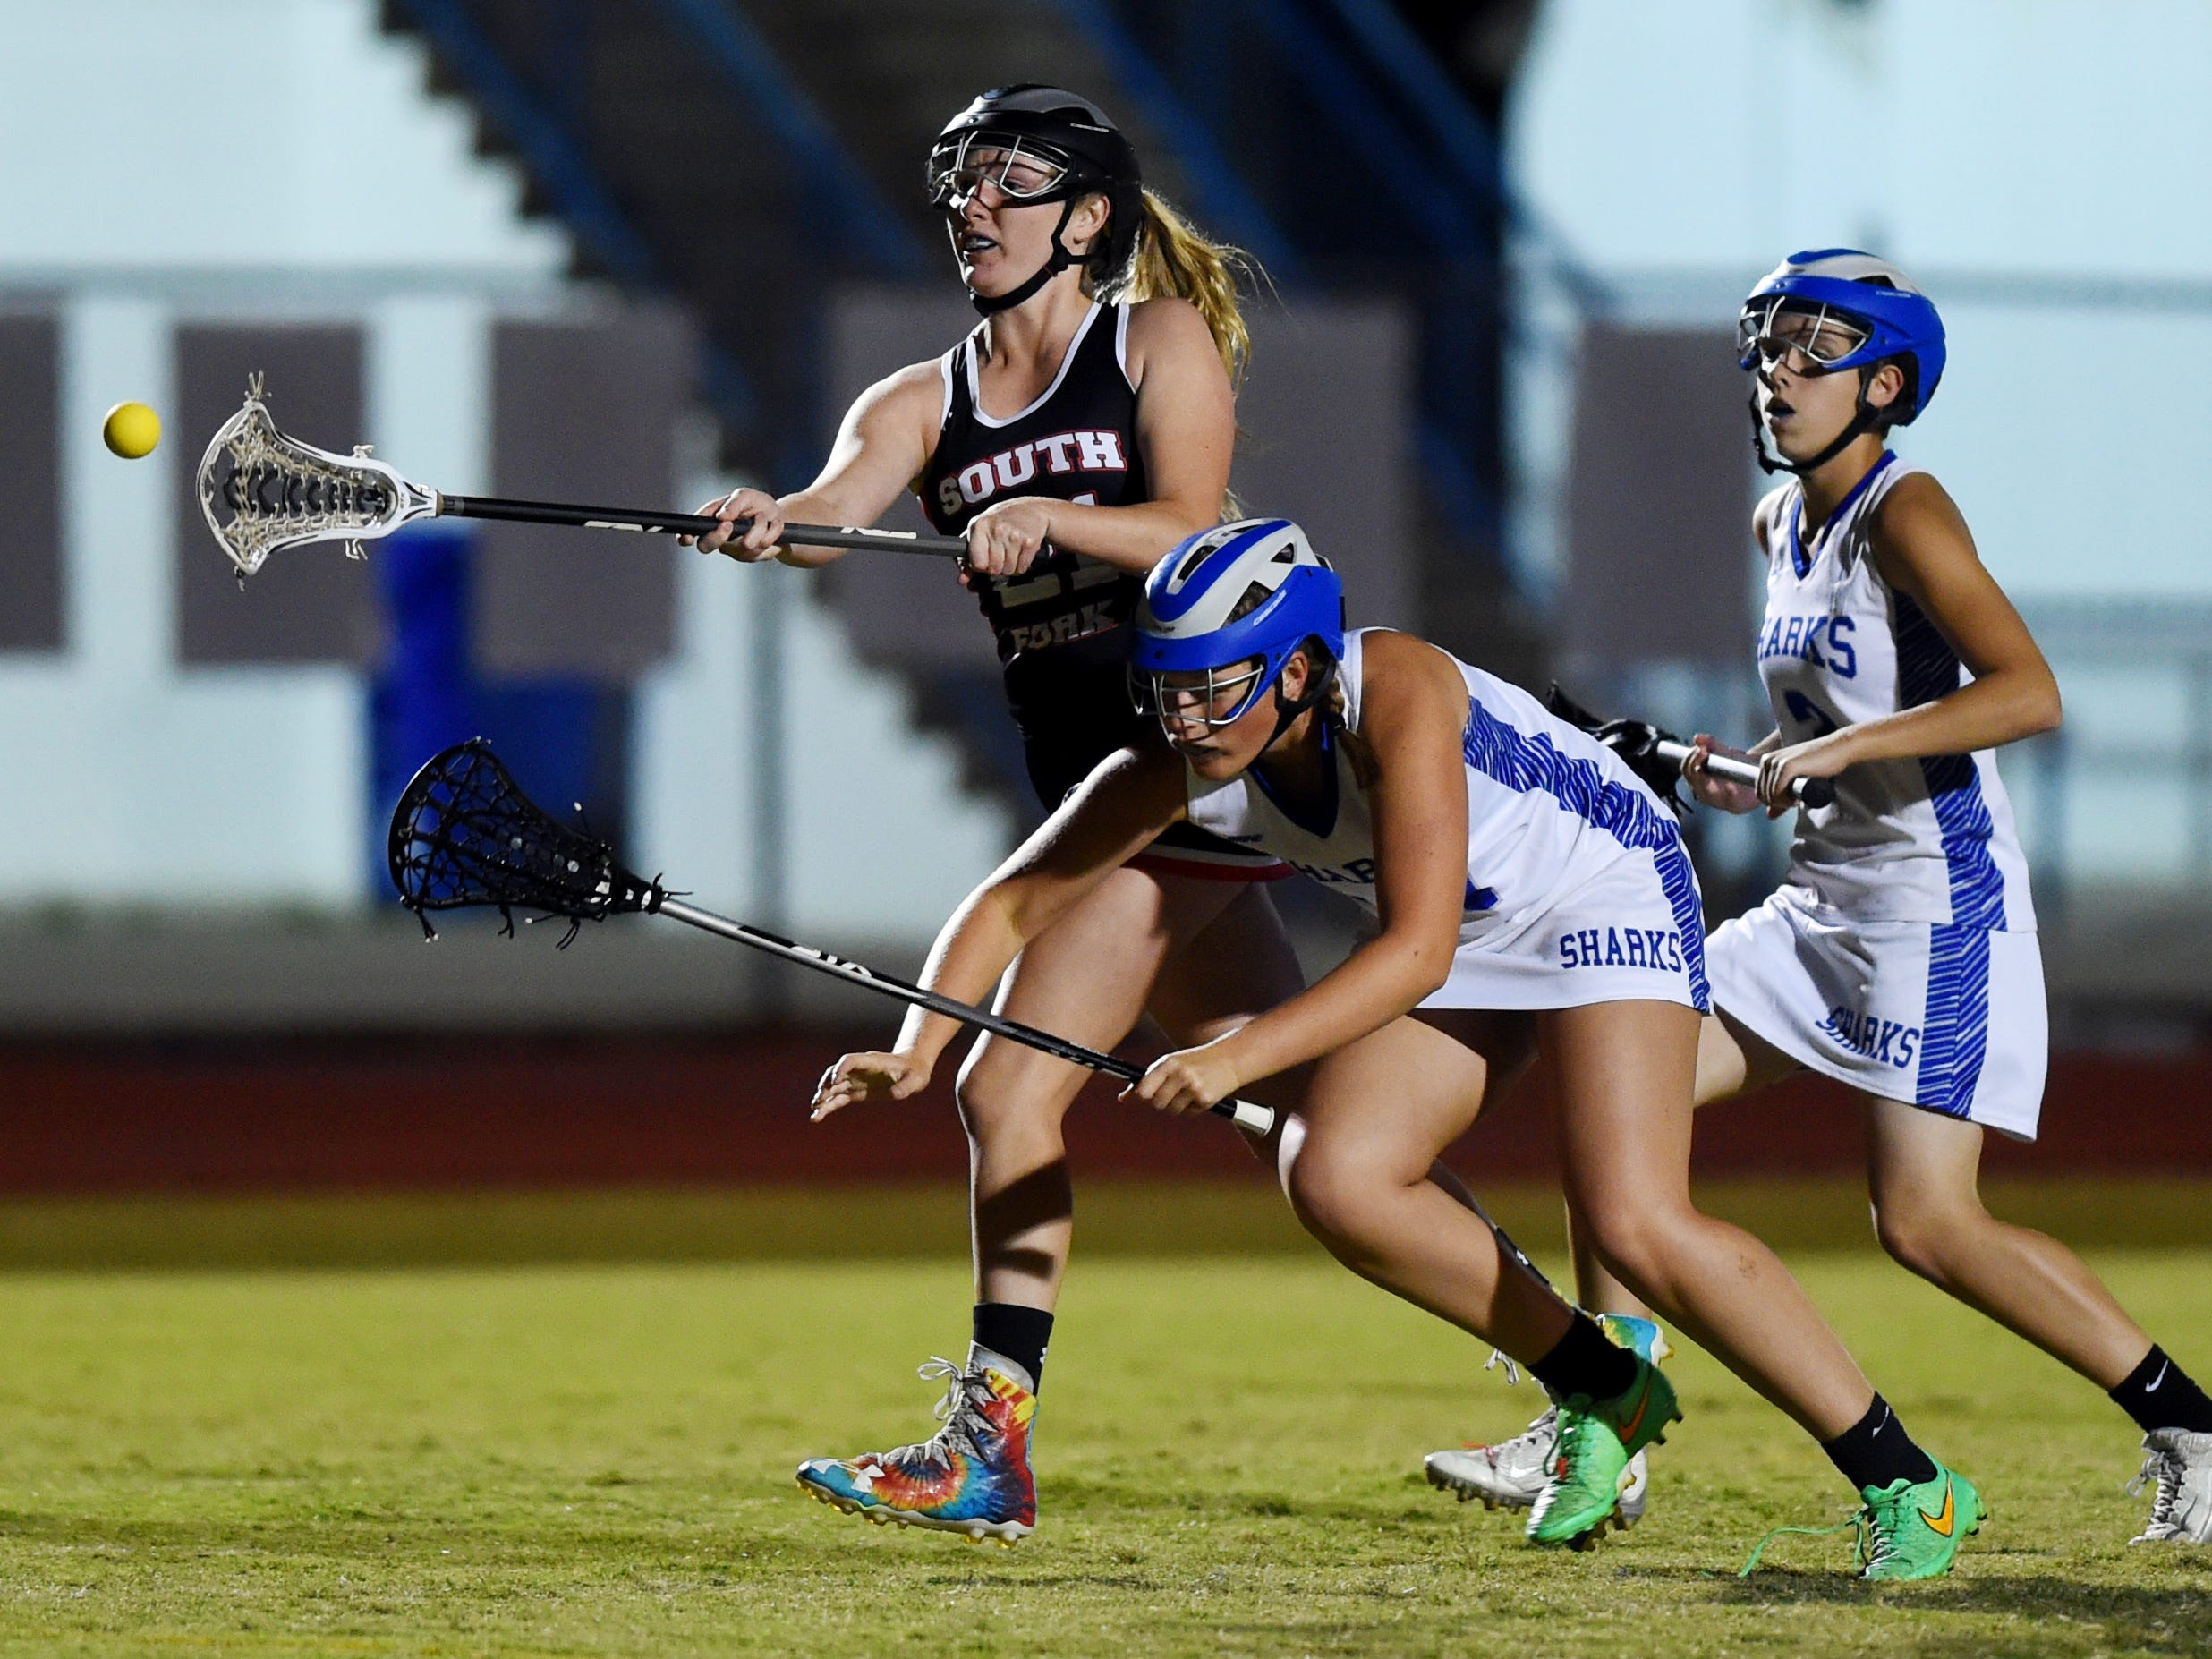 South Fork High School's Ashlyn Sturgill puts a shot on goal Monday, March 5, 2018 during a game against Sebastian River. Southfork won the game 10-9. To see more photos, visit TCPalm.comCQ: Ashlyn Sturgill